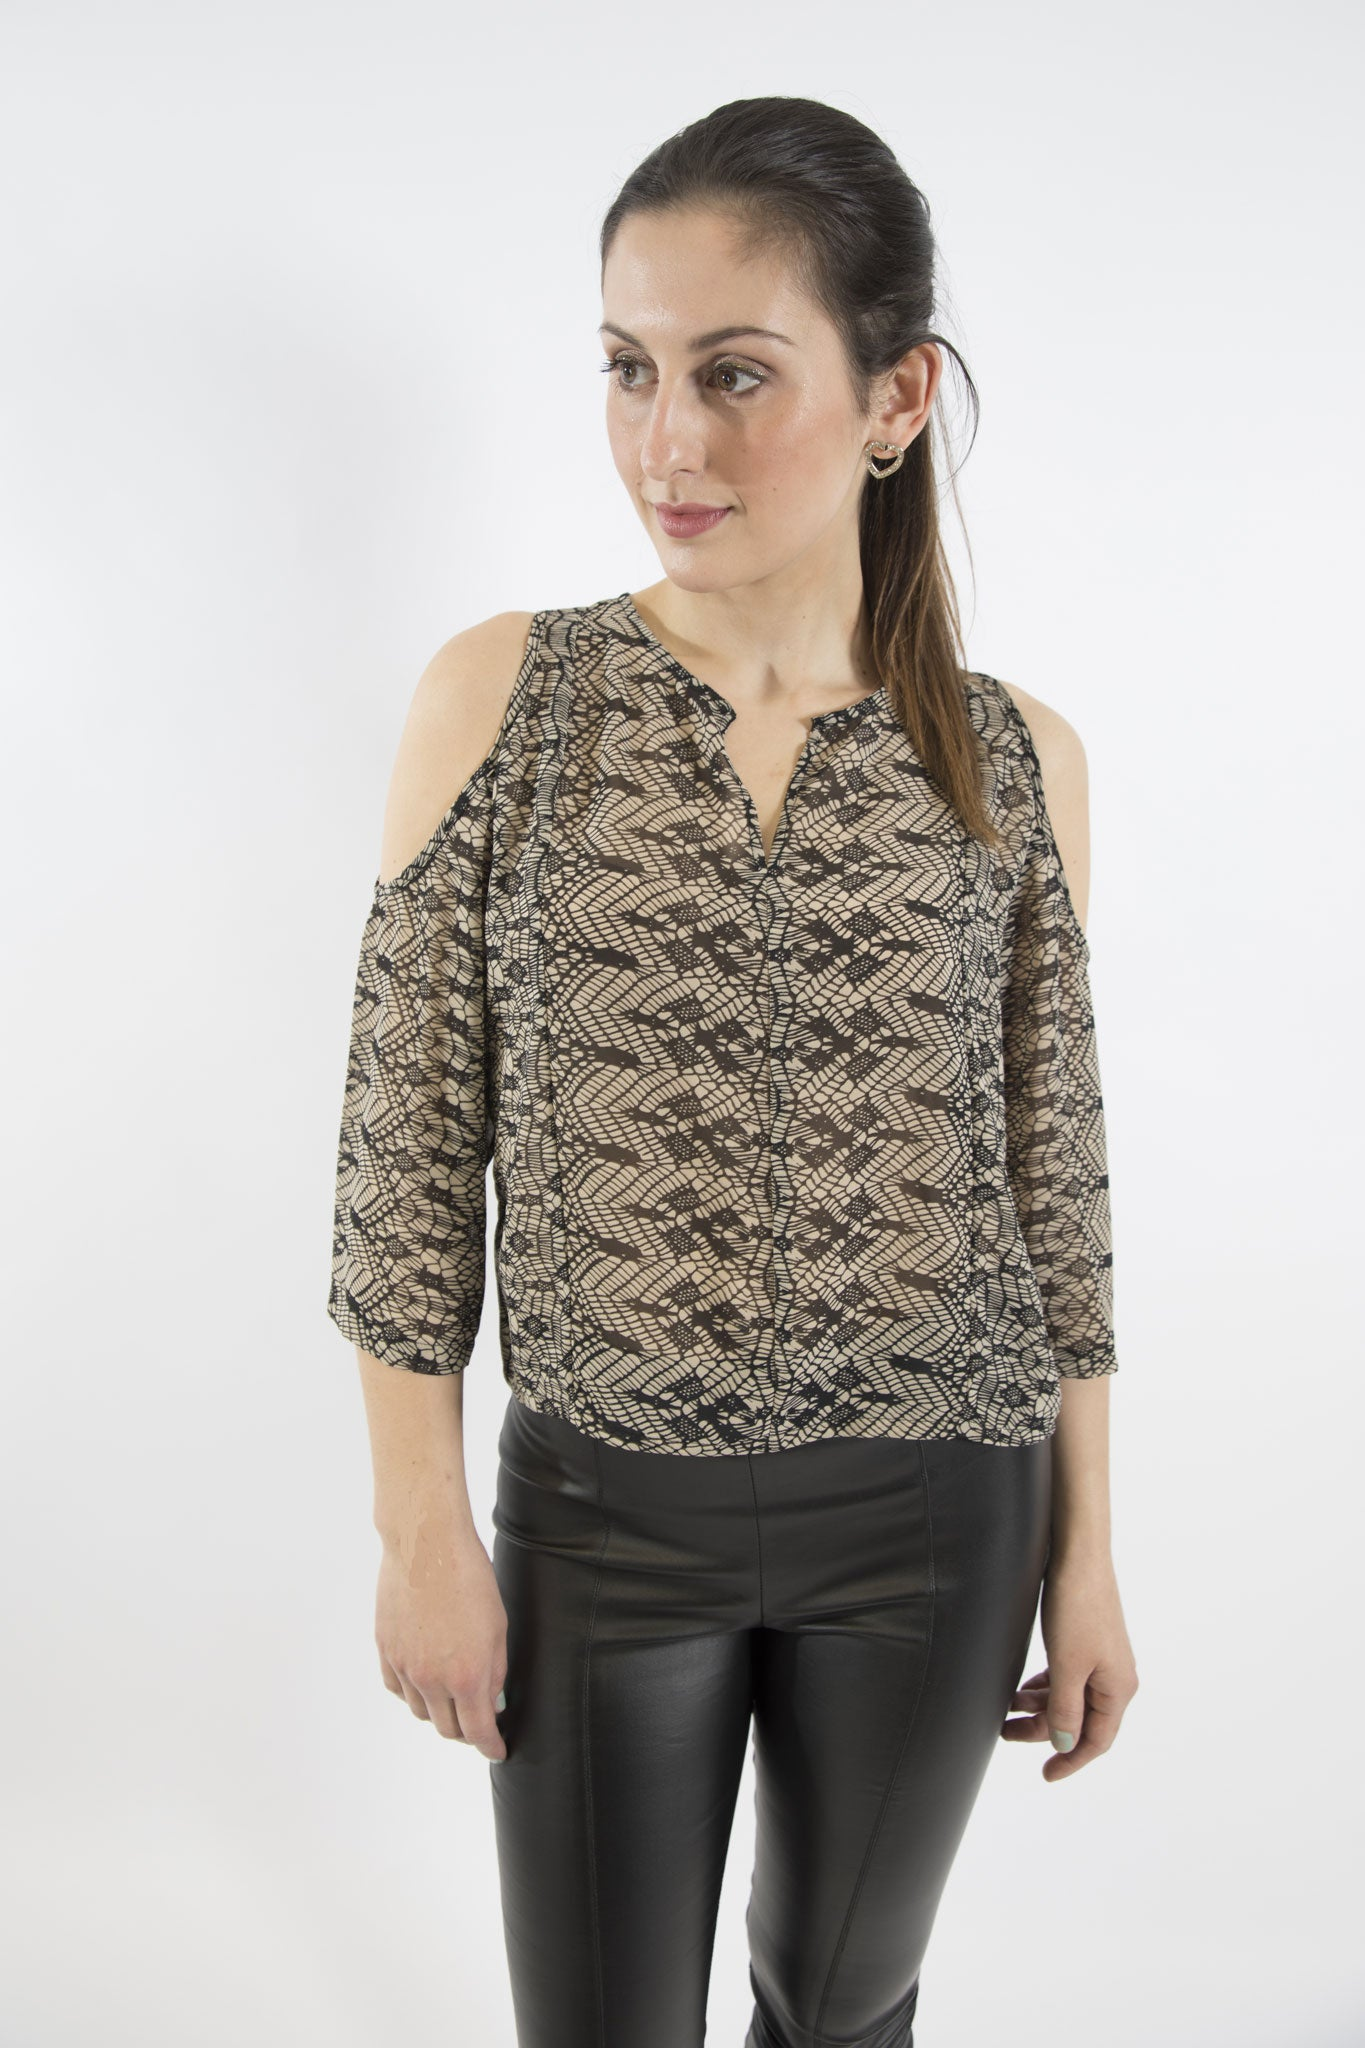 Sketch London black nude neutral lace print cold shoulder top ethical sustainable party going out